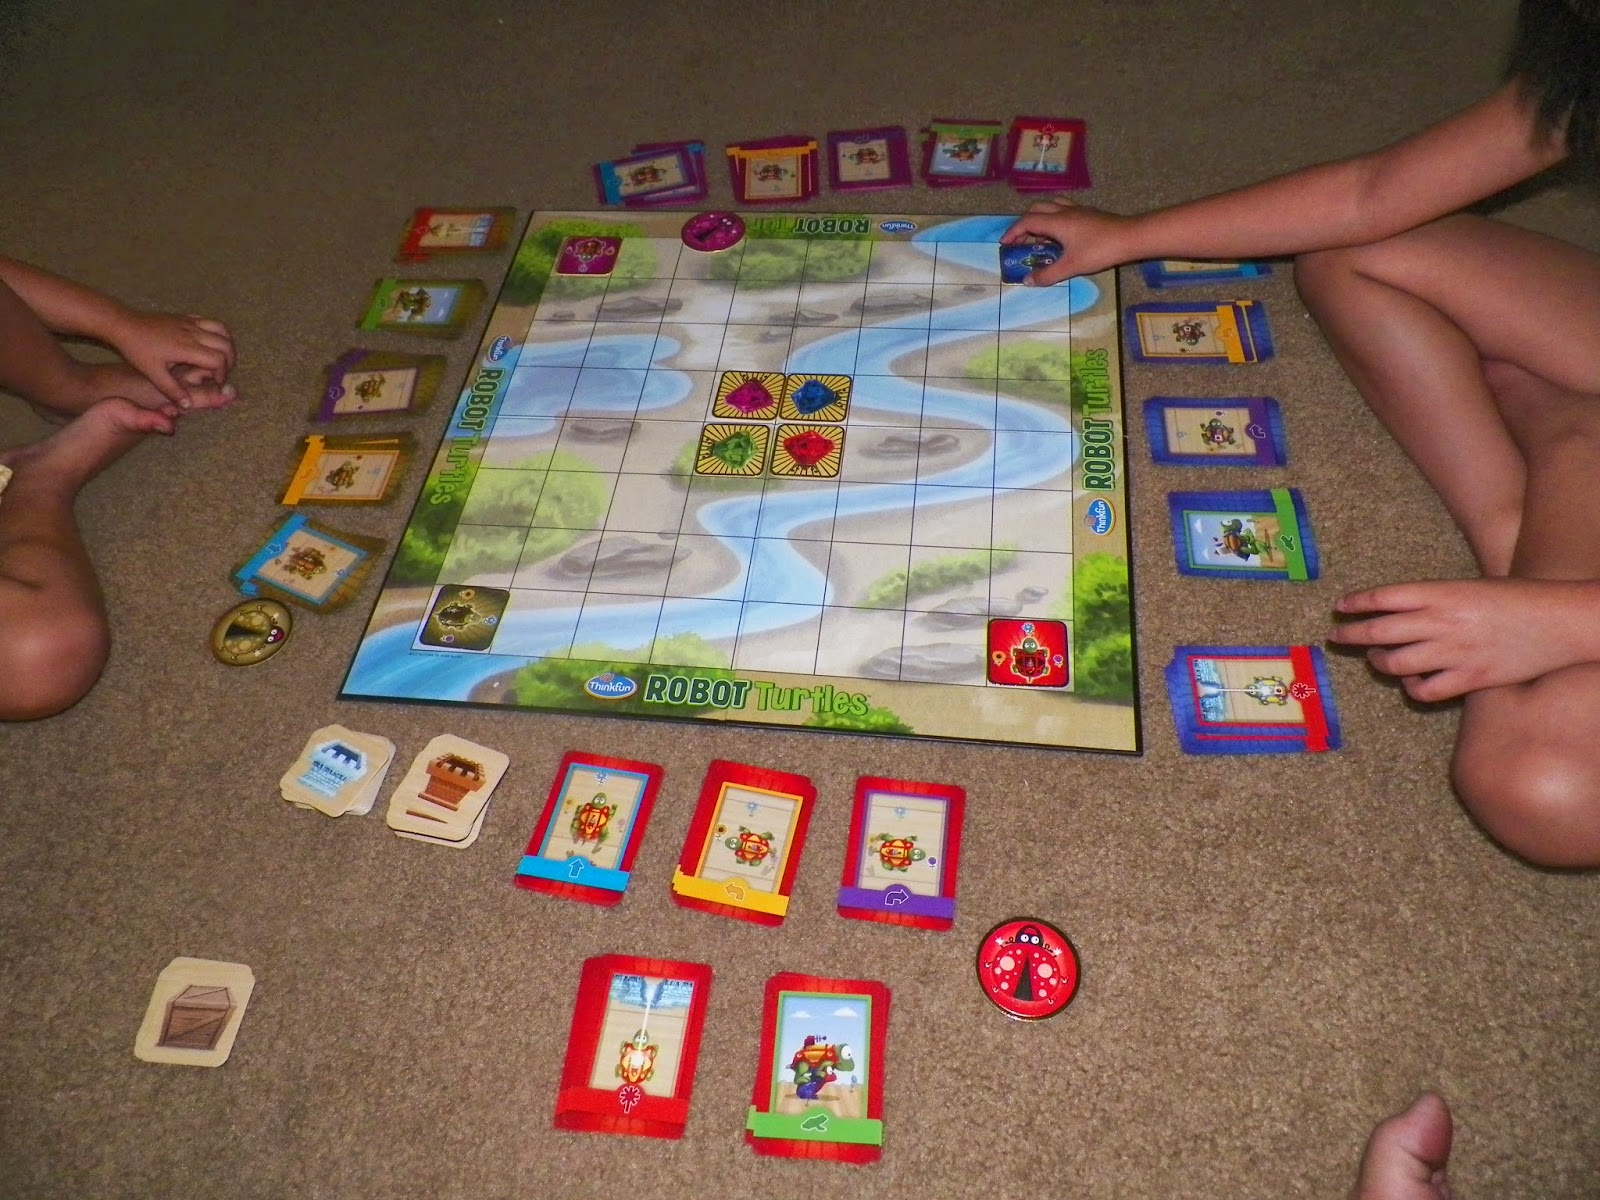 mygreatfinds: Robot Turtles Board Game Review